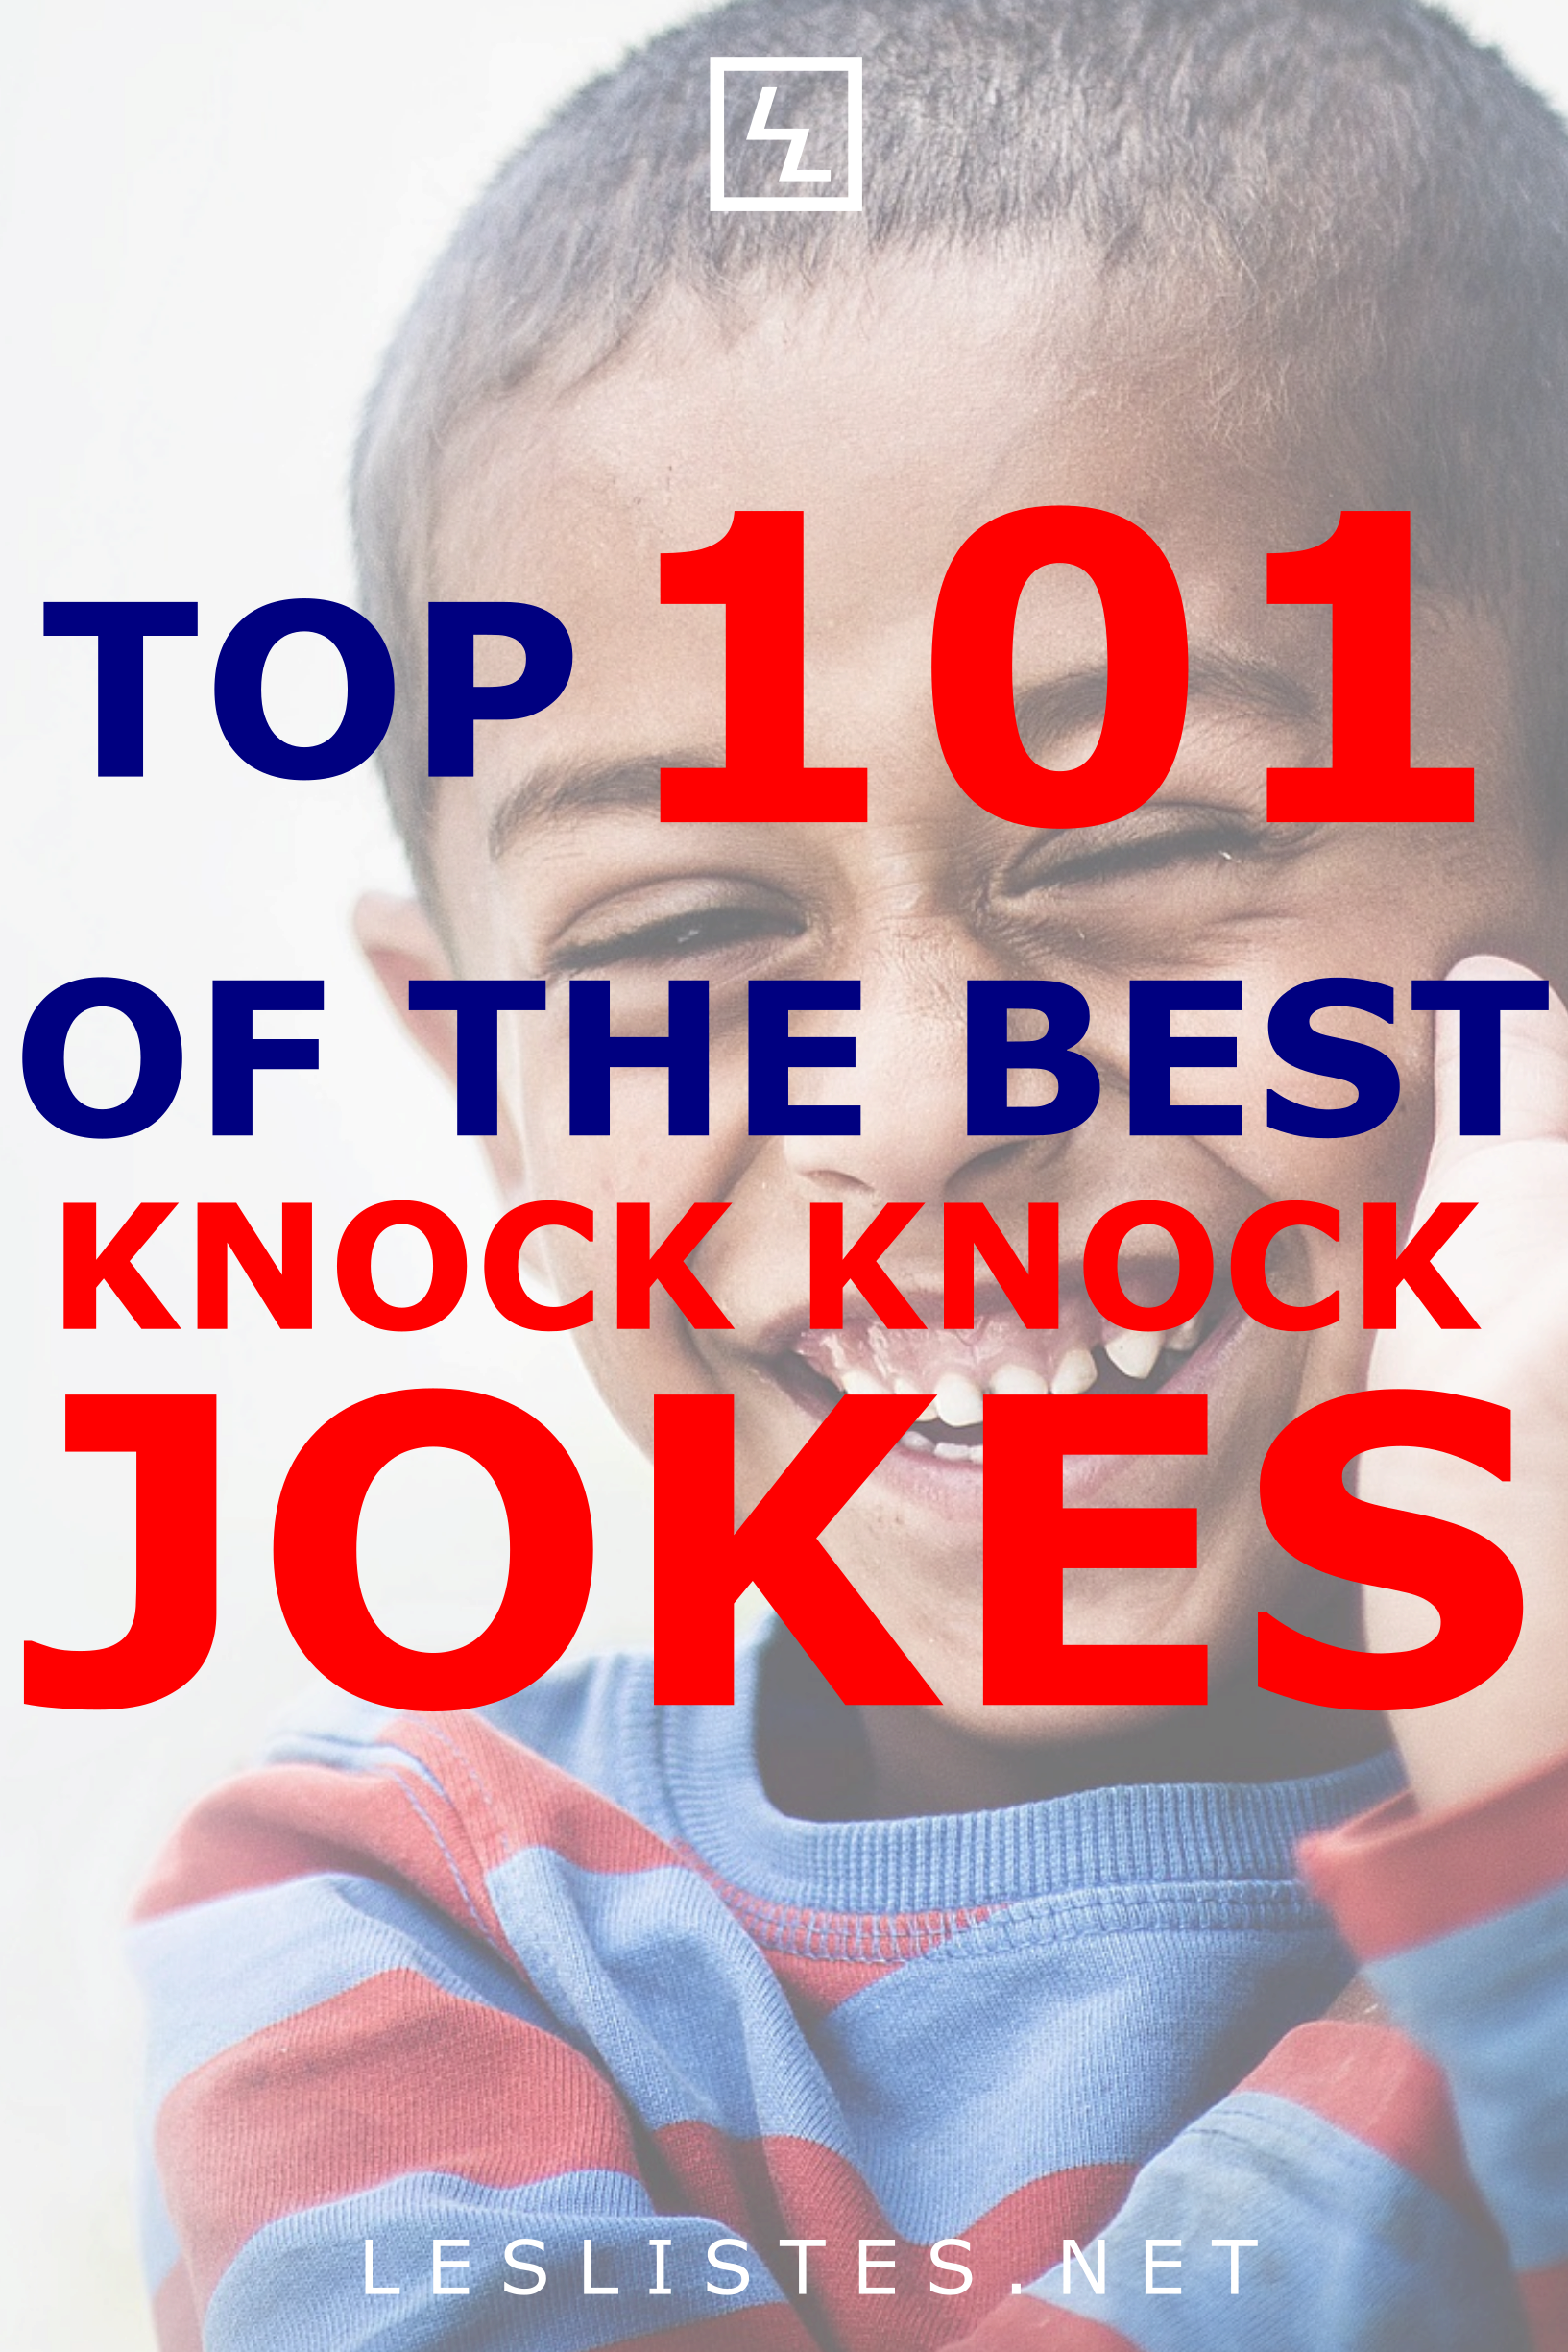 Knock Knock Jokes Are Some Of The Easiest Jokes That You Can Make Check Out The Top 101 Funny Knock Knock Joke Knock Knock Jokes Funny Knock Knock Jokes Jokes